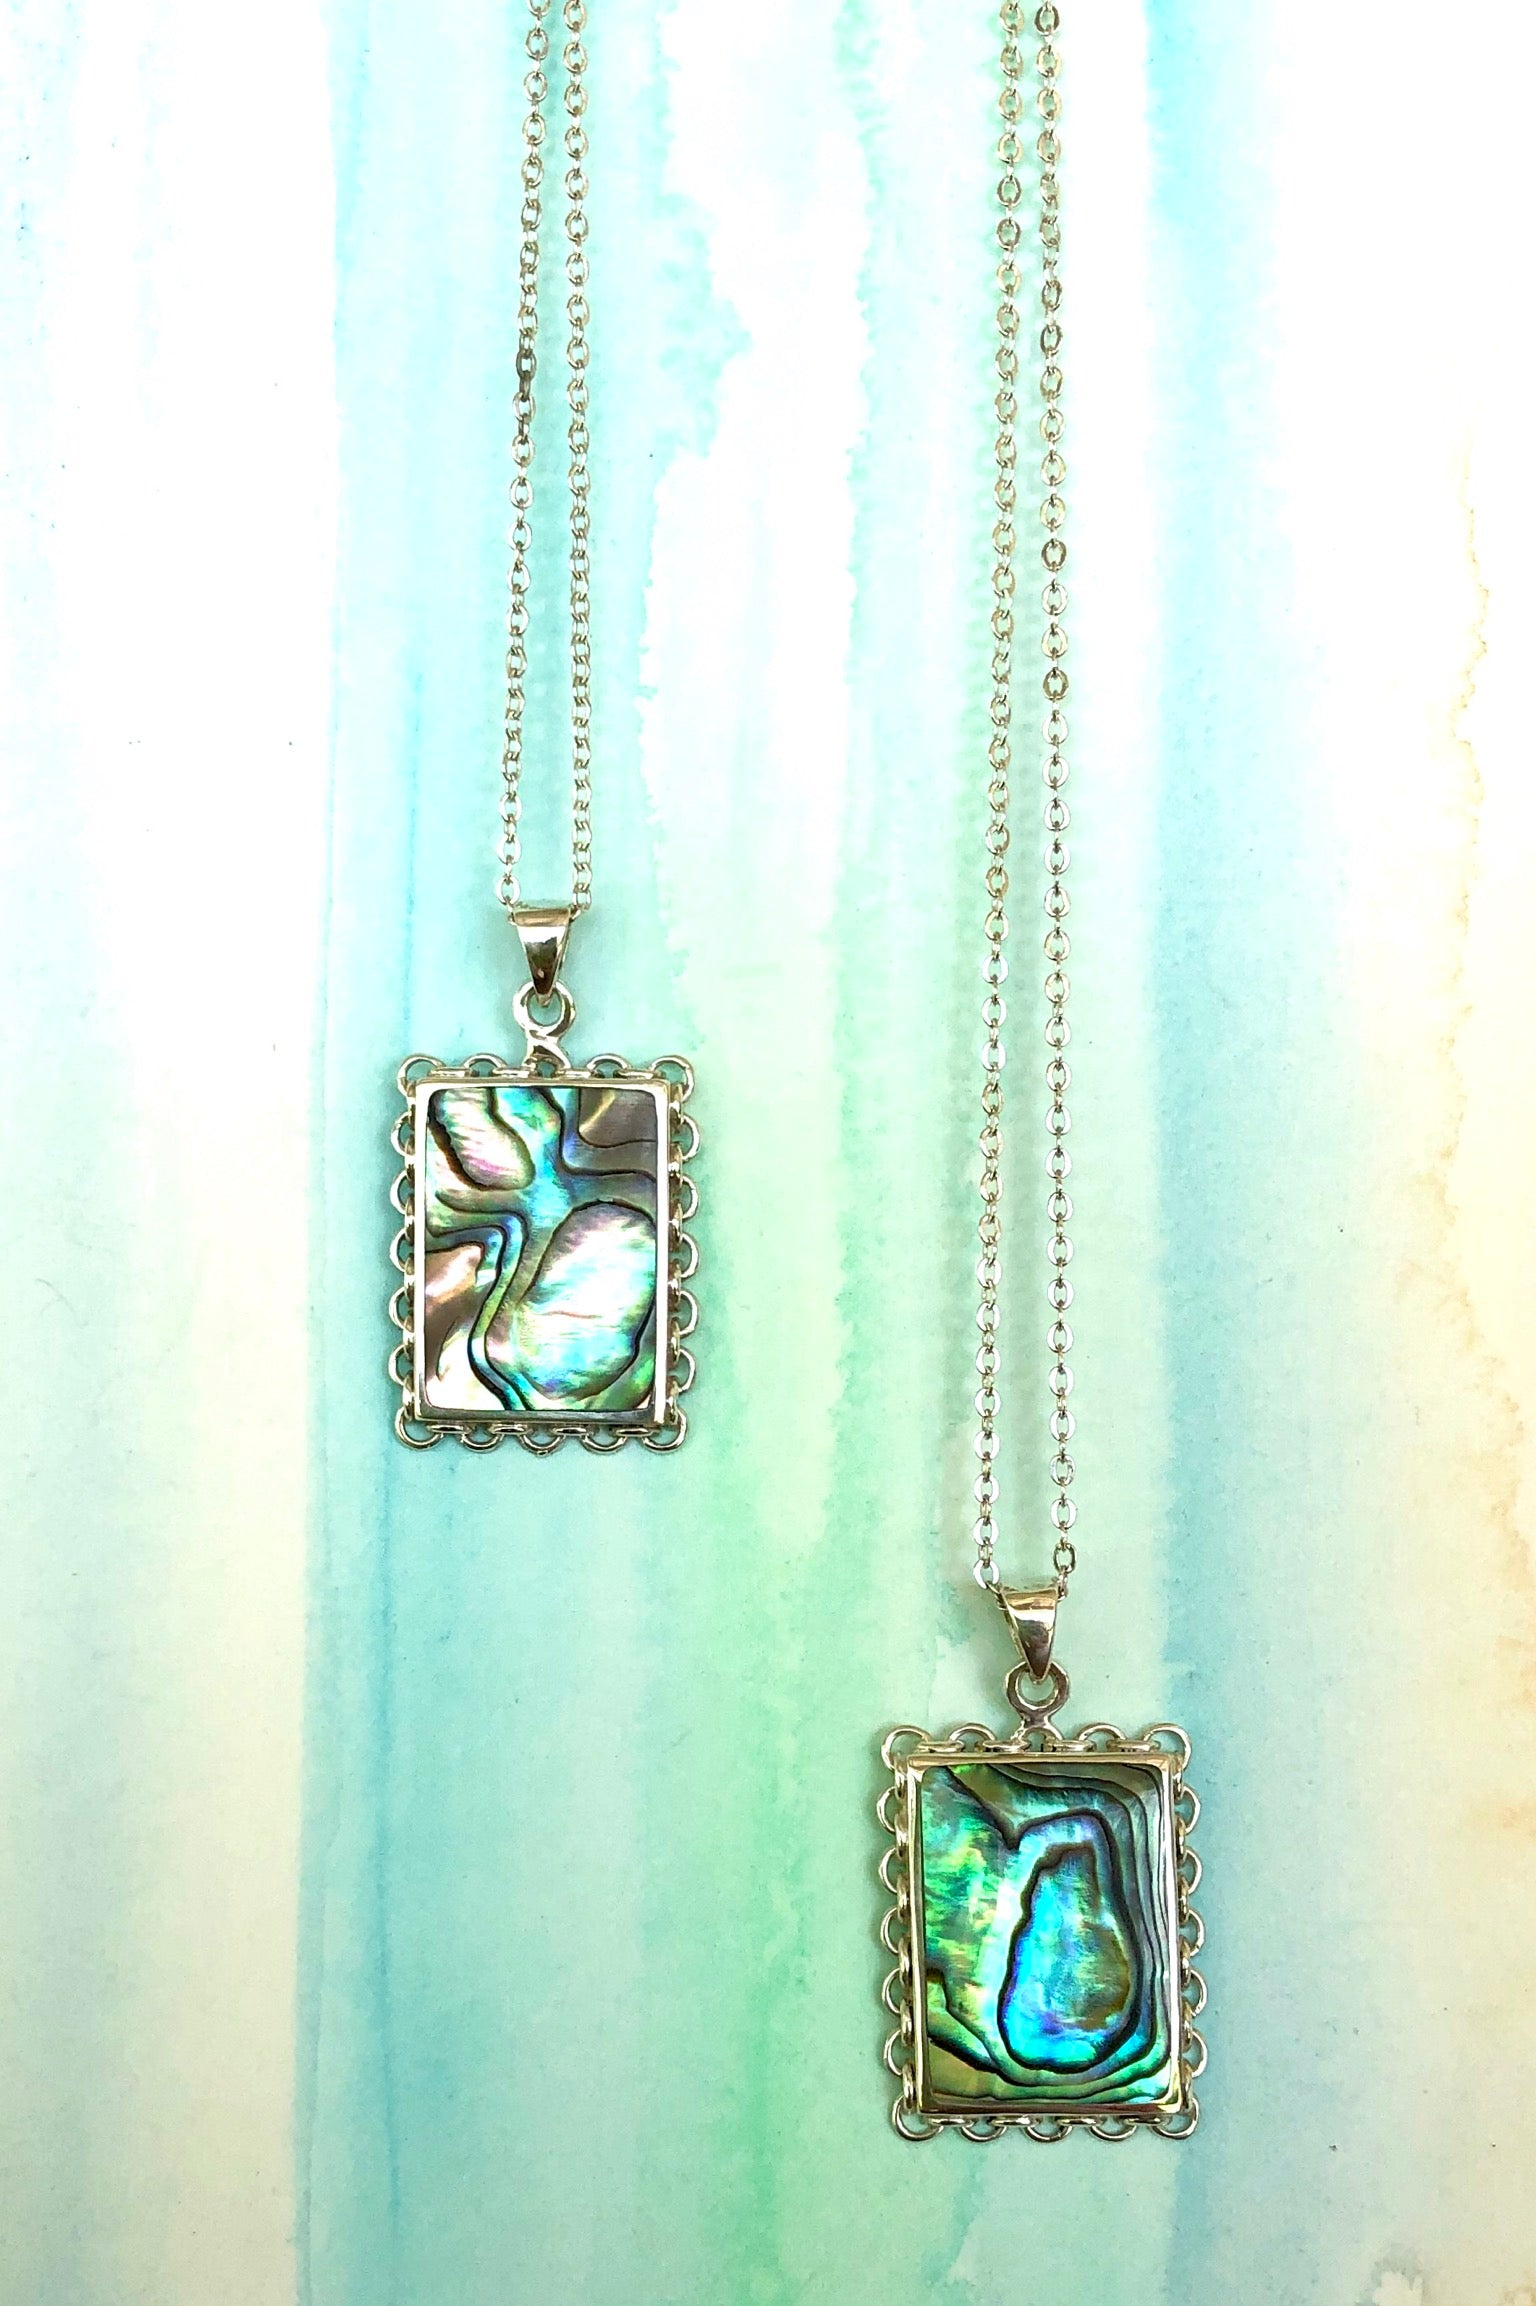 A beautiful handmade necklace with a mysterious Paua shell setting